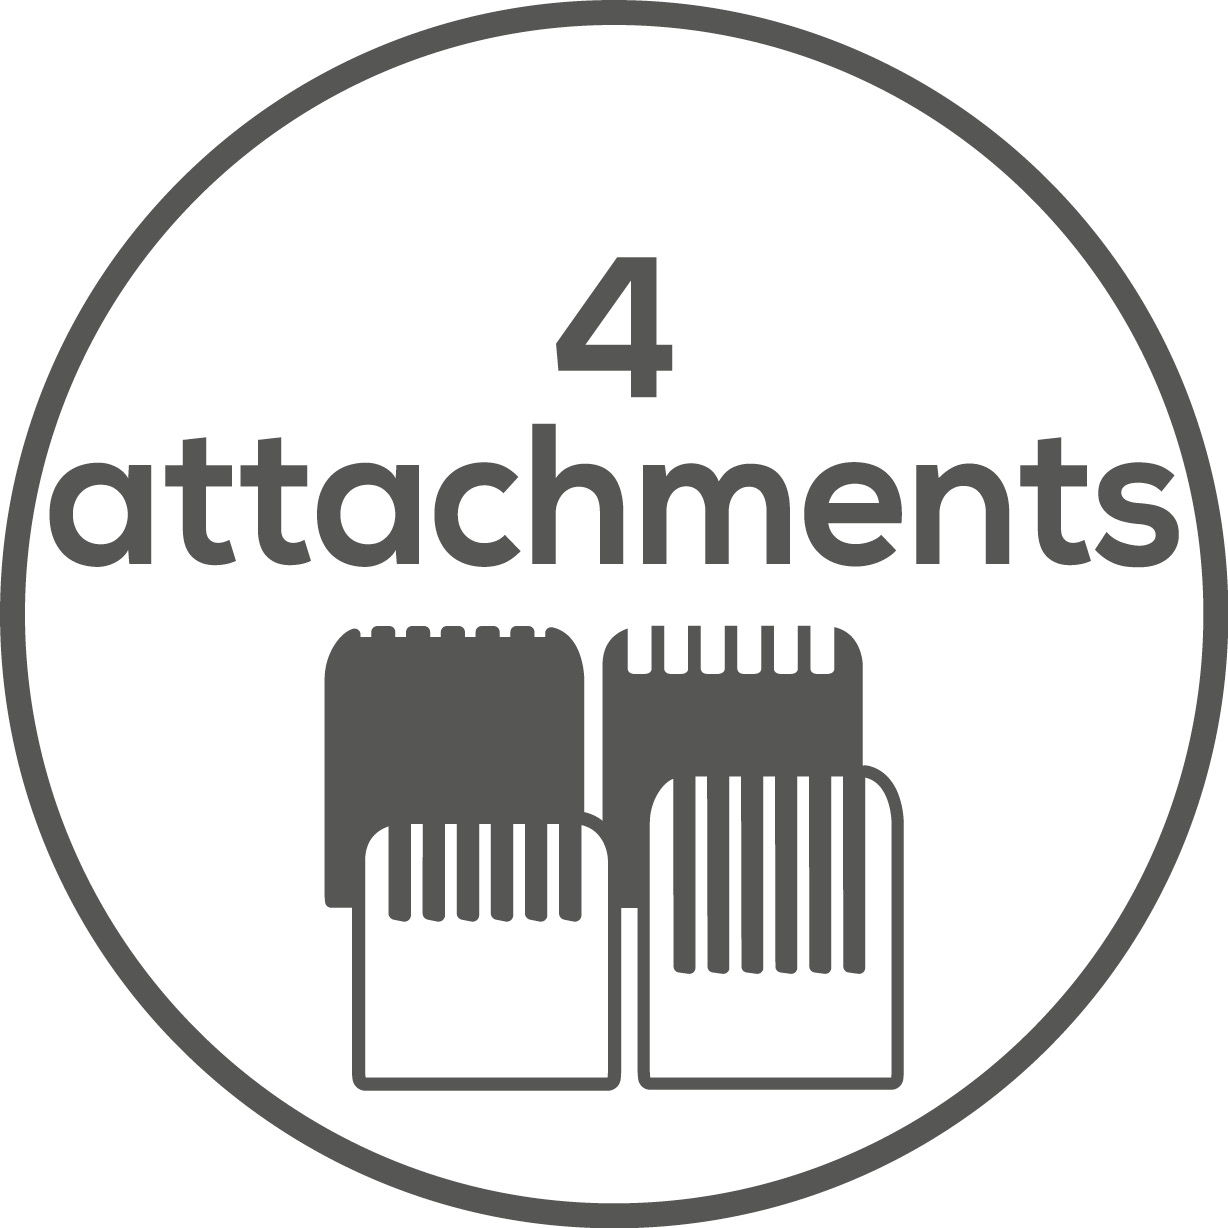 Accessories With four extra attachments